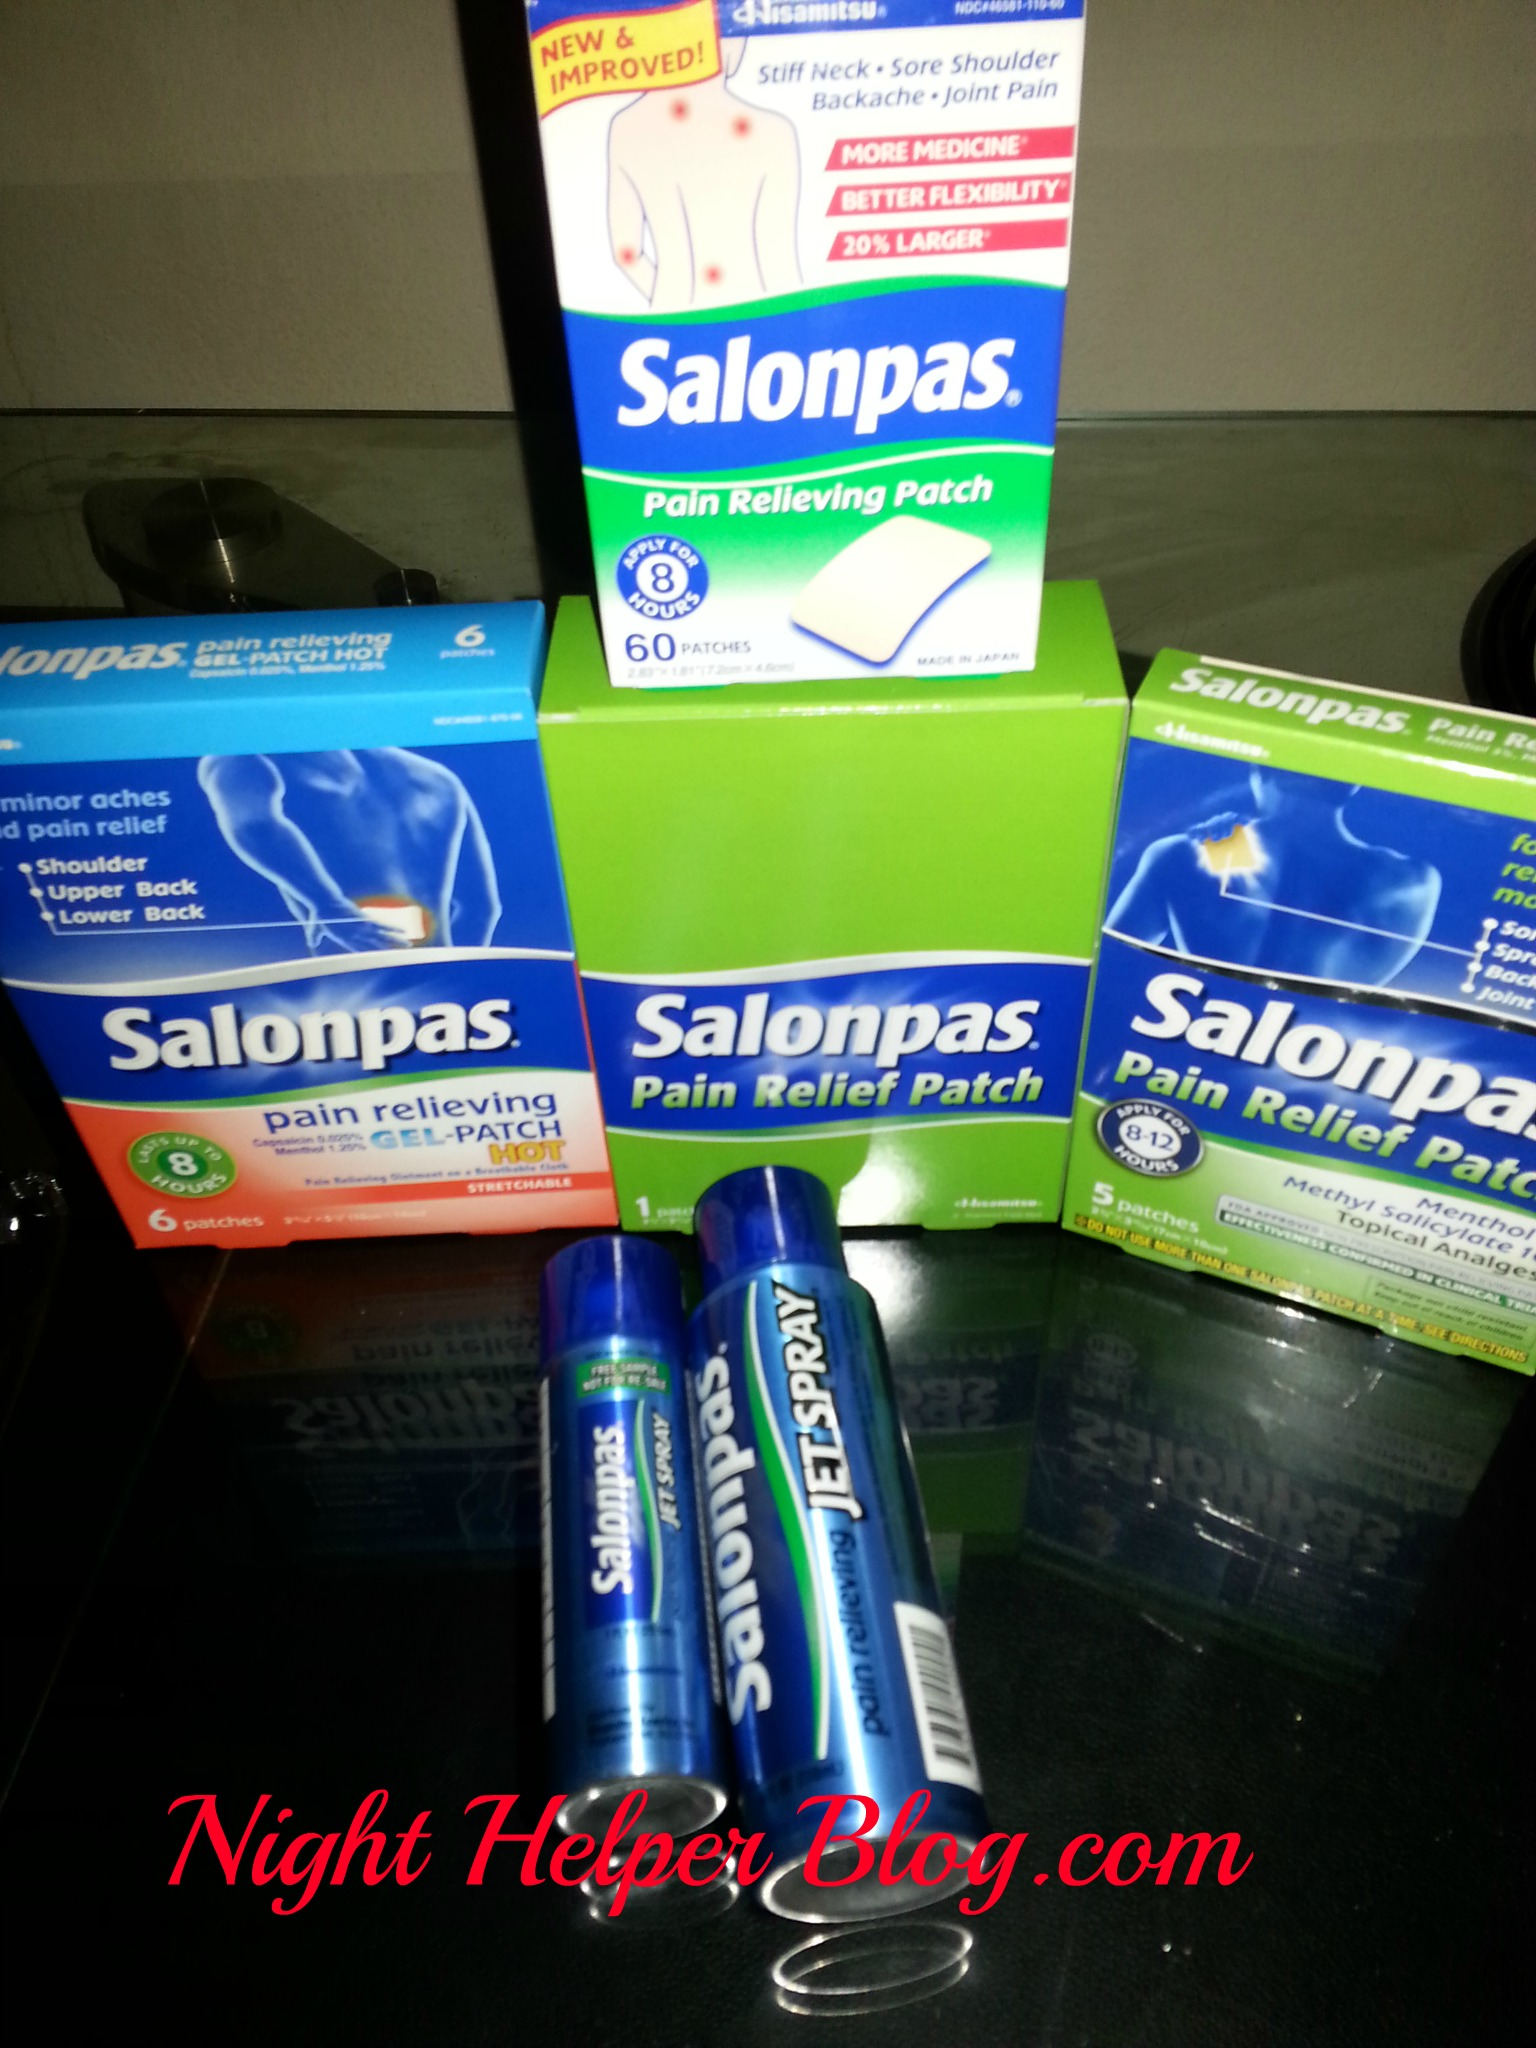 Happy Valentine's Day from SalonPas.